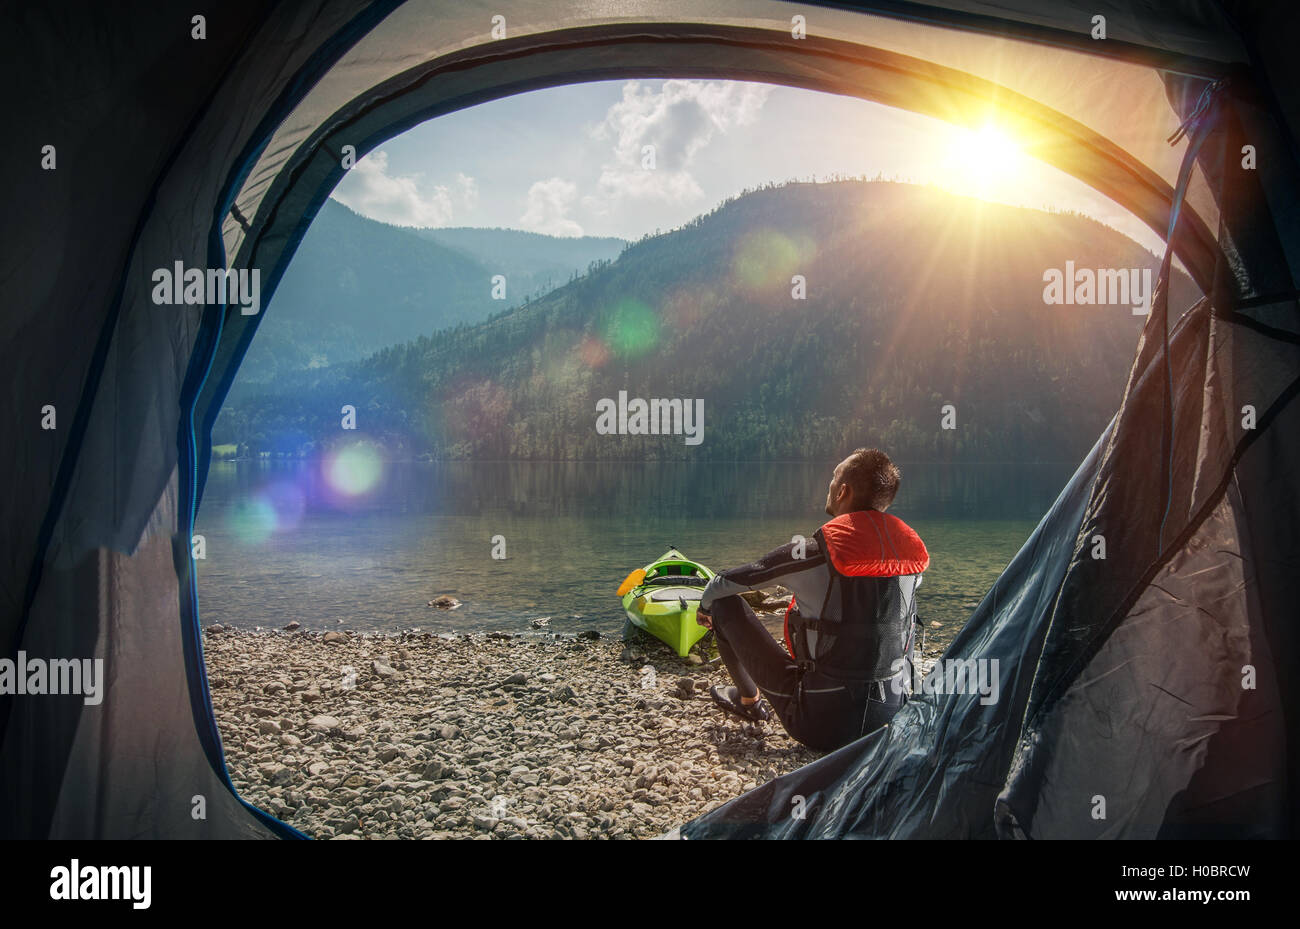 Tenting and Kayaking on the Lake. Caucasian Sportsman Camping and Kayaking on the Scenic Mountain Lake Shore. - Stock Image